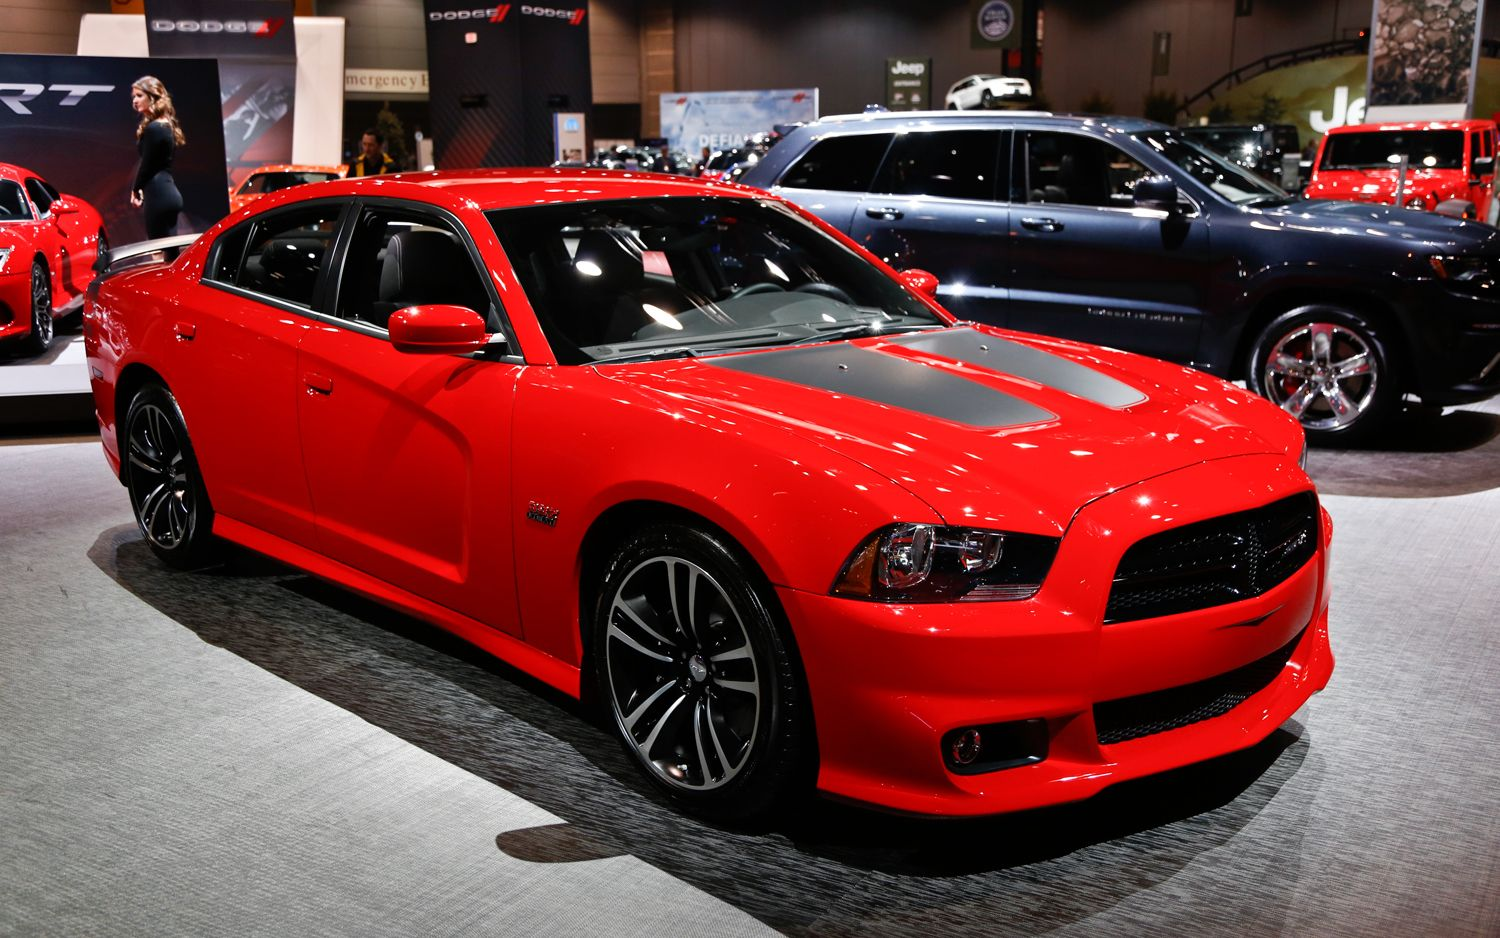 new 2014 dodge charger srt8 automotive photo picture desktop cars pinterest 2014 dodge. Black Bedroom Furniture Sets. Home Design Ideas